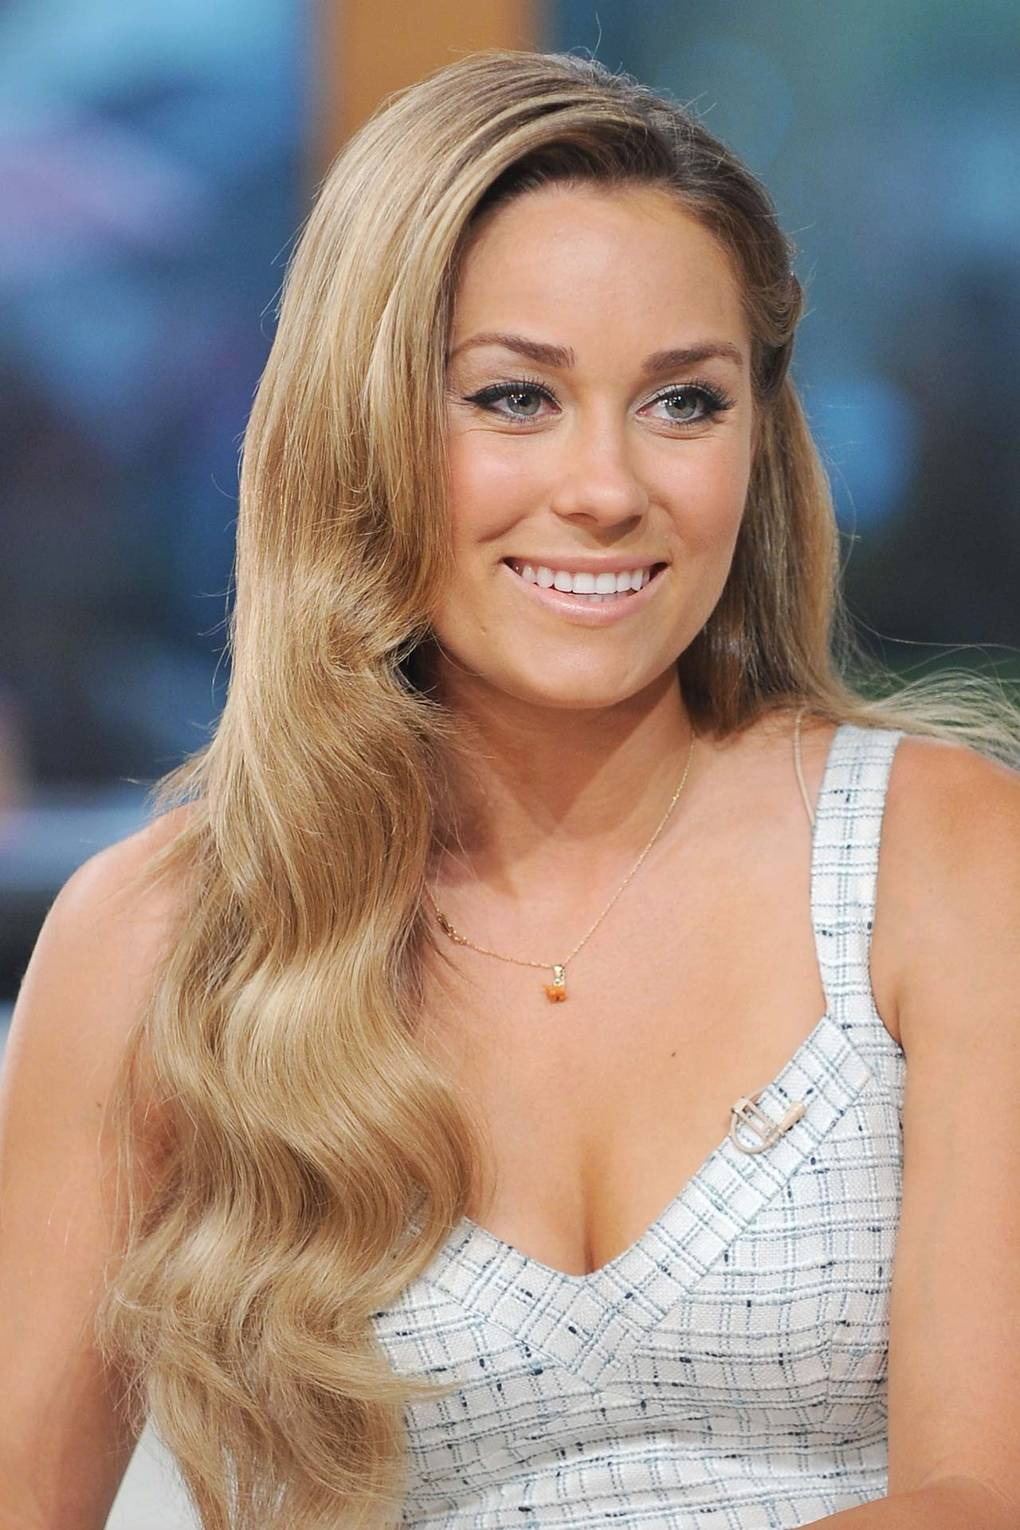 Hair Extensions Guide How To Wear Extensions And Look Natural